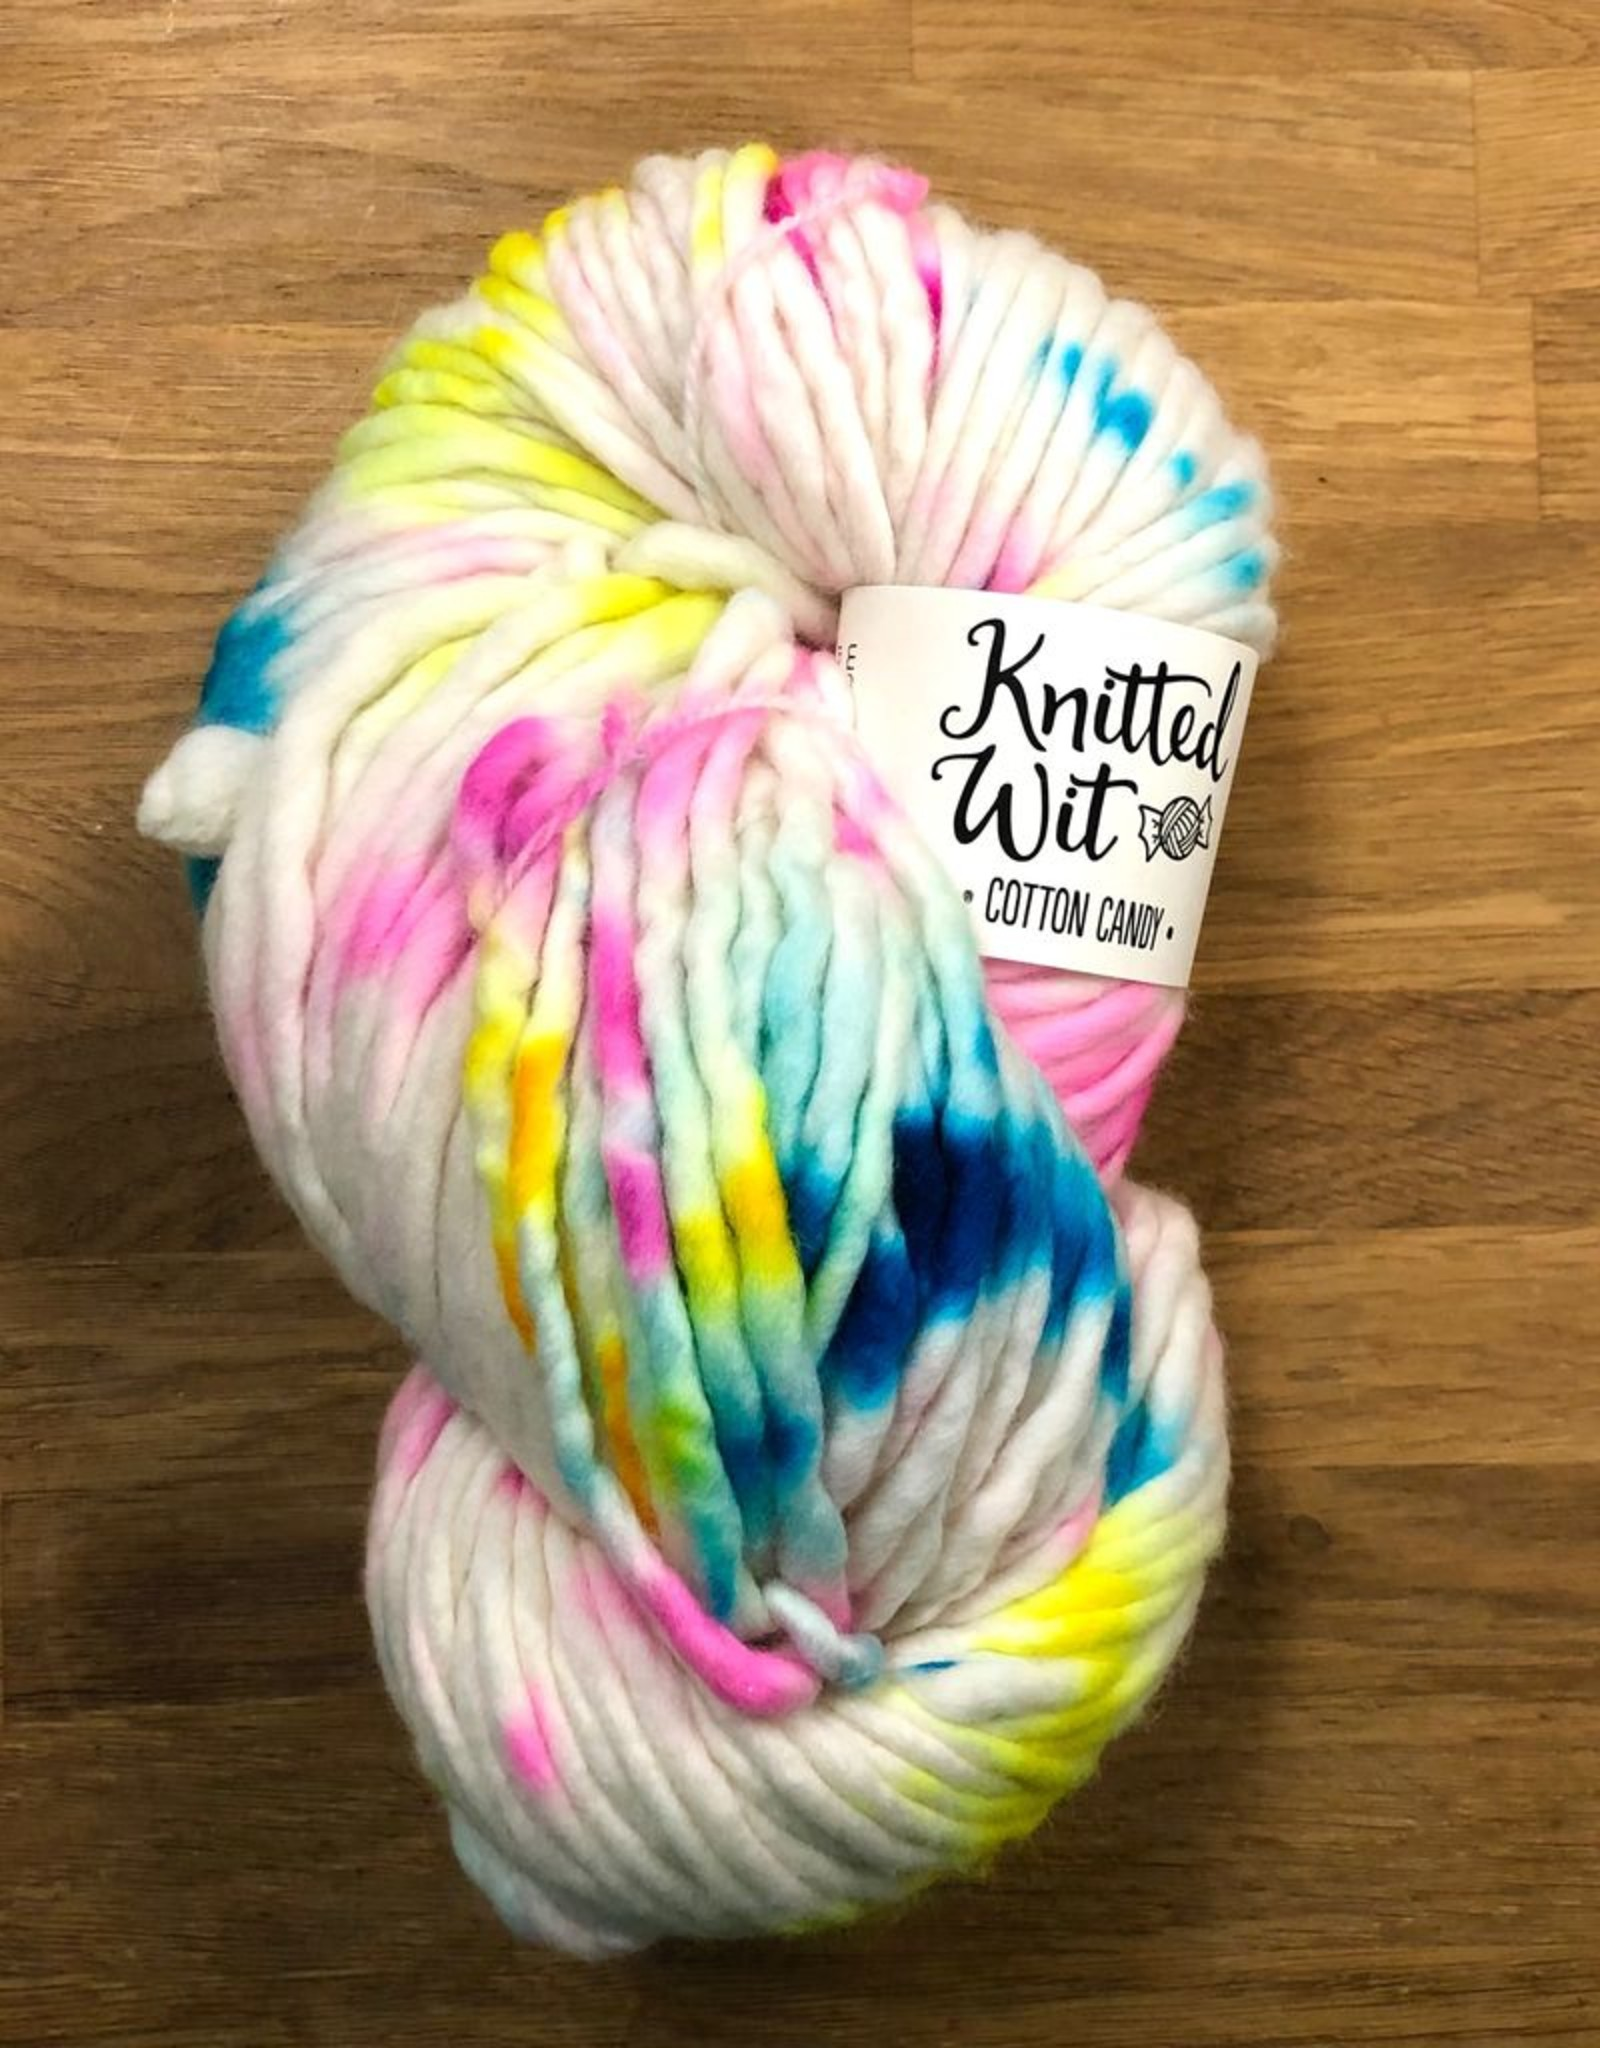 Knitted Wit Cotton Candy by Knitted Wit